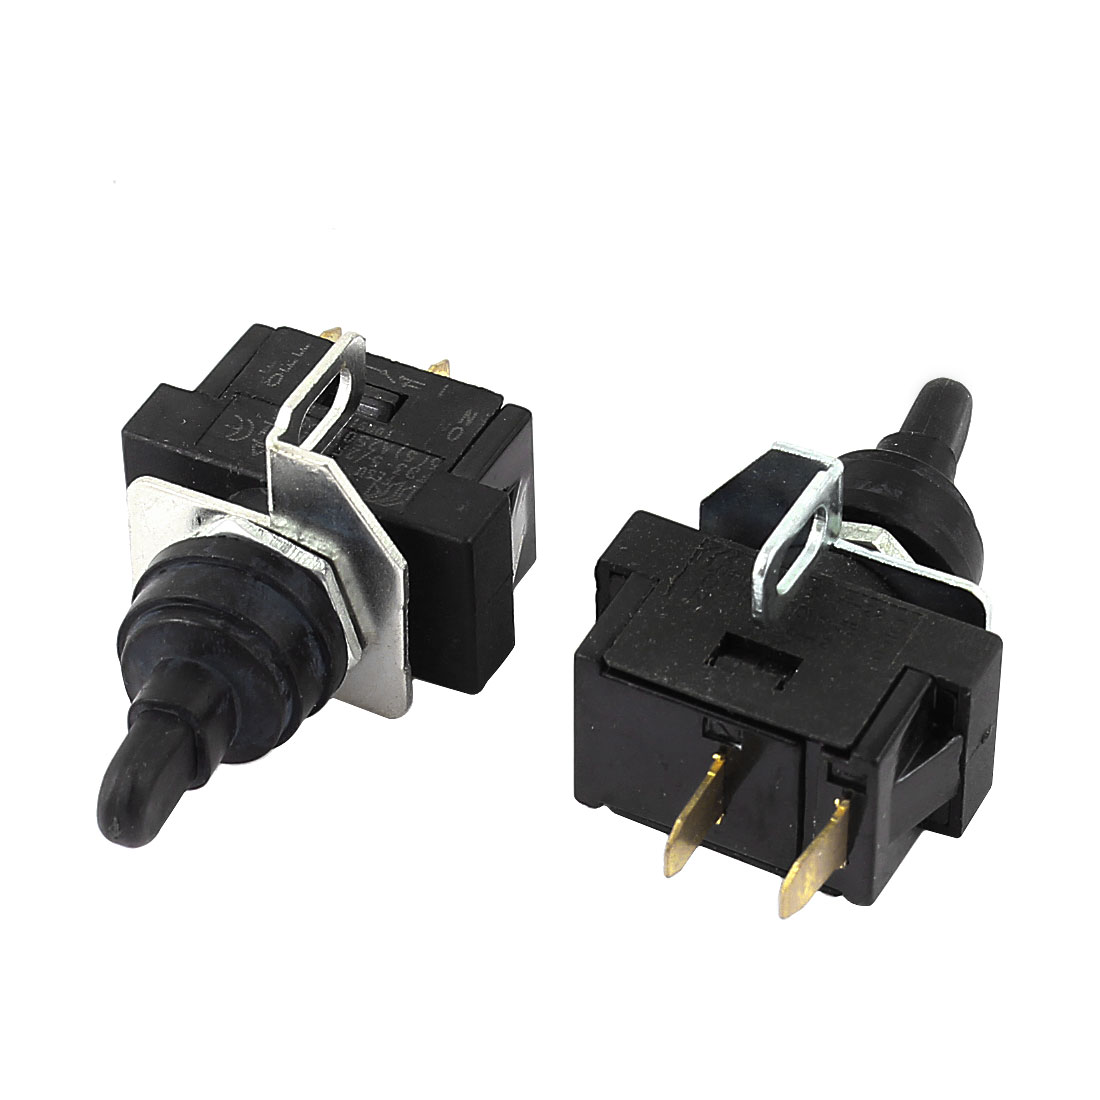 AC 5A 250V ON/OFF 2 Positions SPST 2 Terminals Toggle Switch 2Pcs